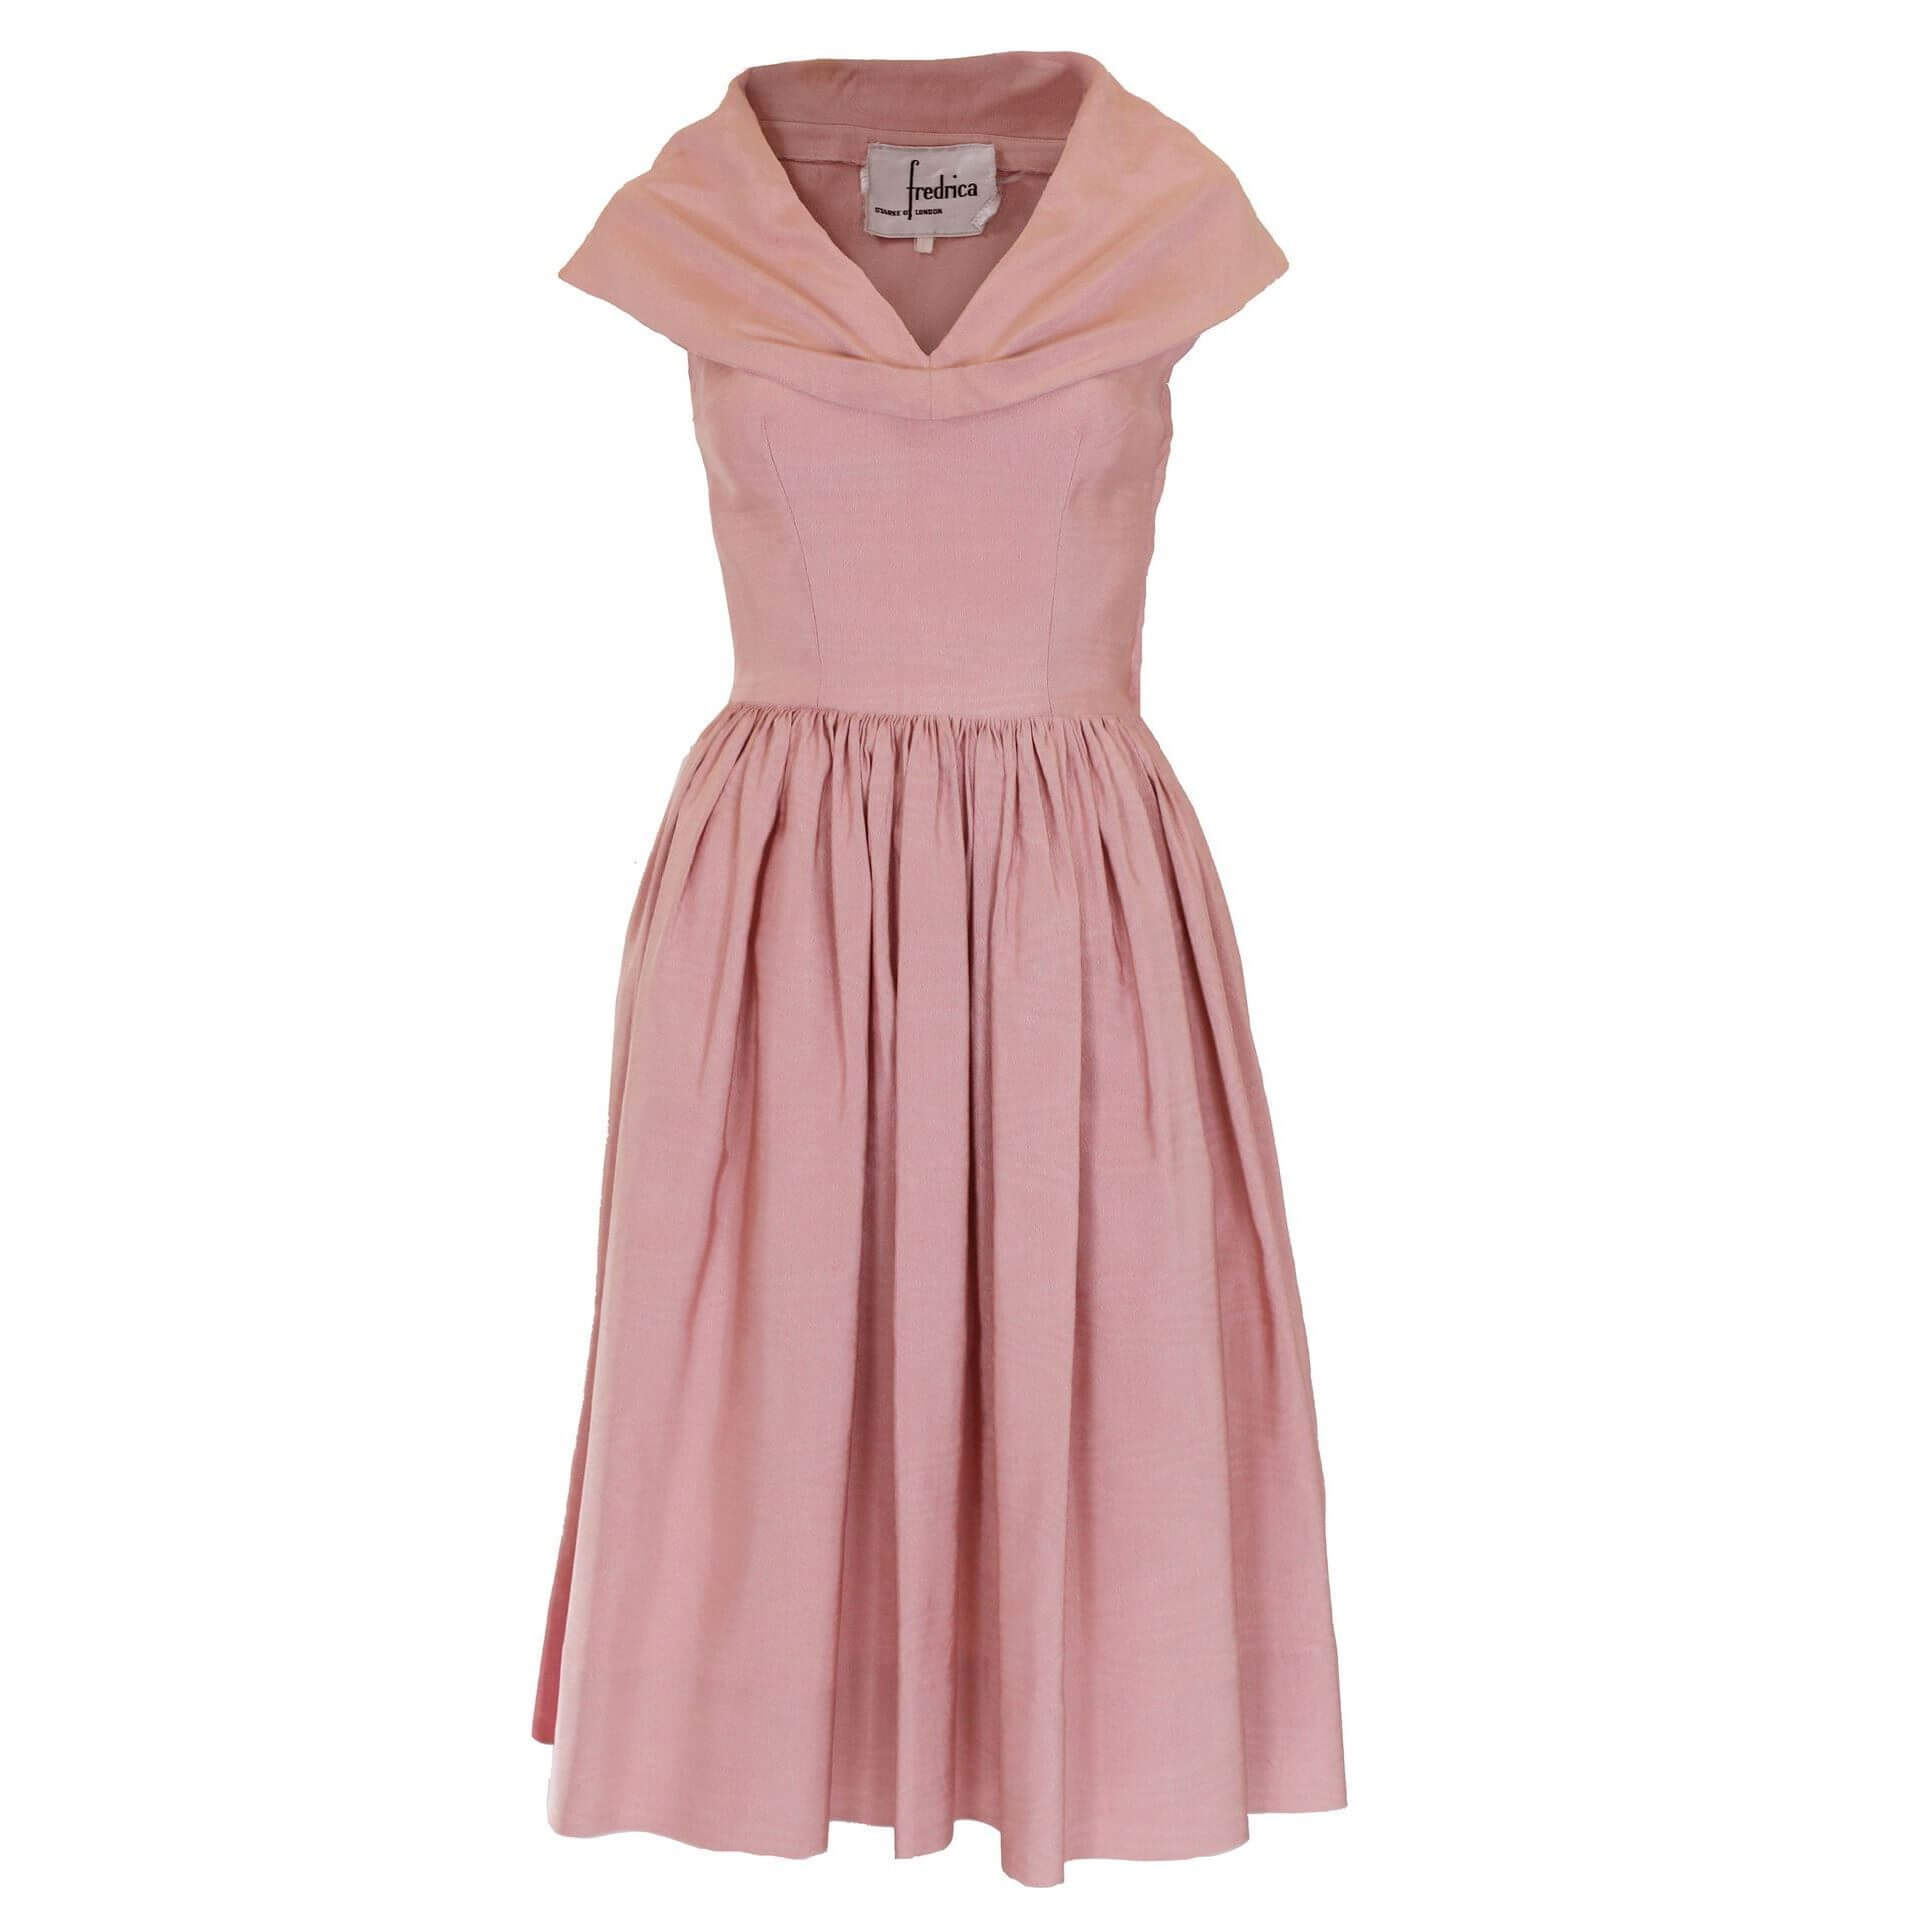 1950s Dusty Pink Prom Style Dress